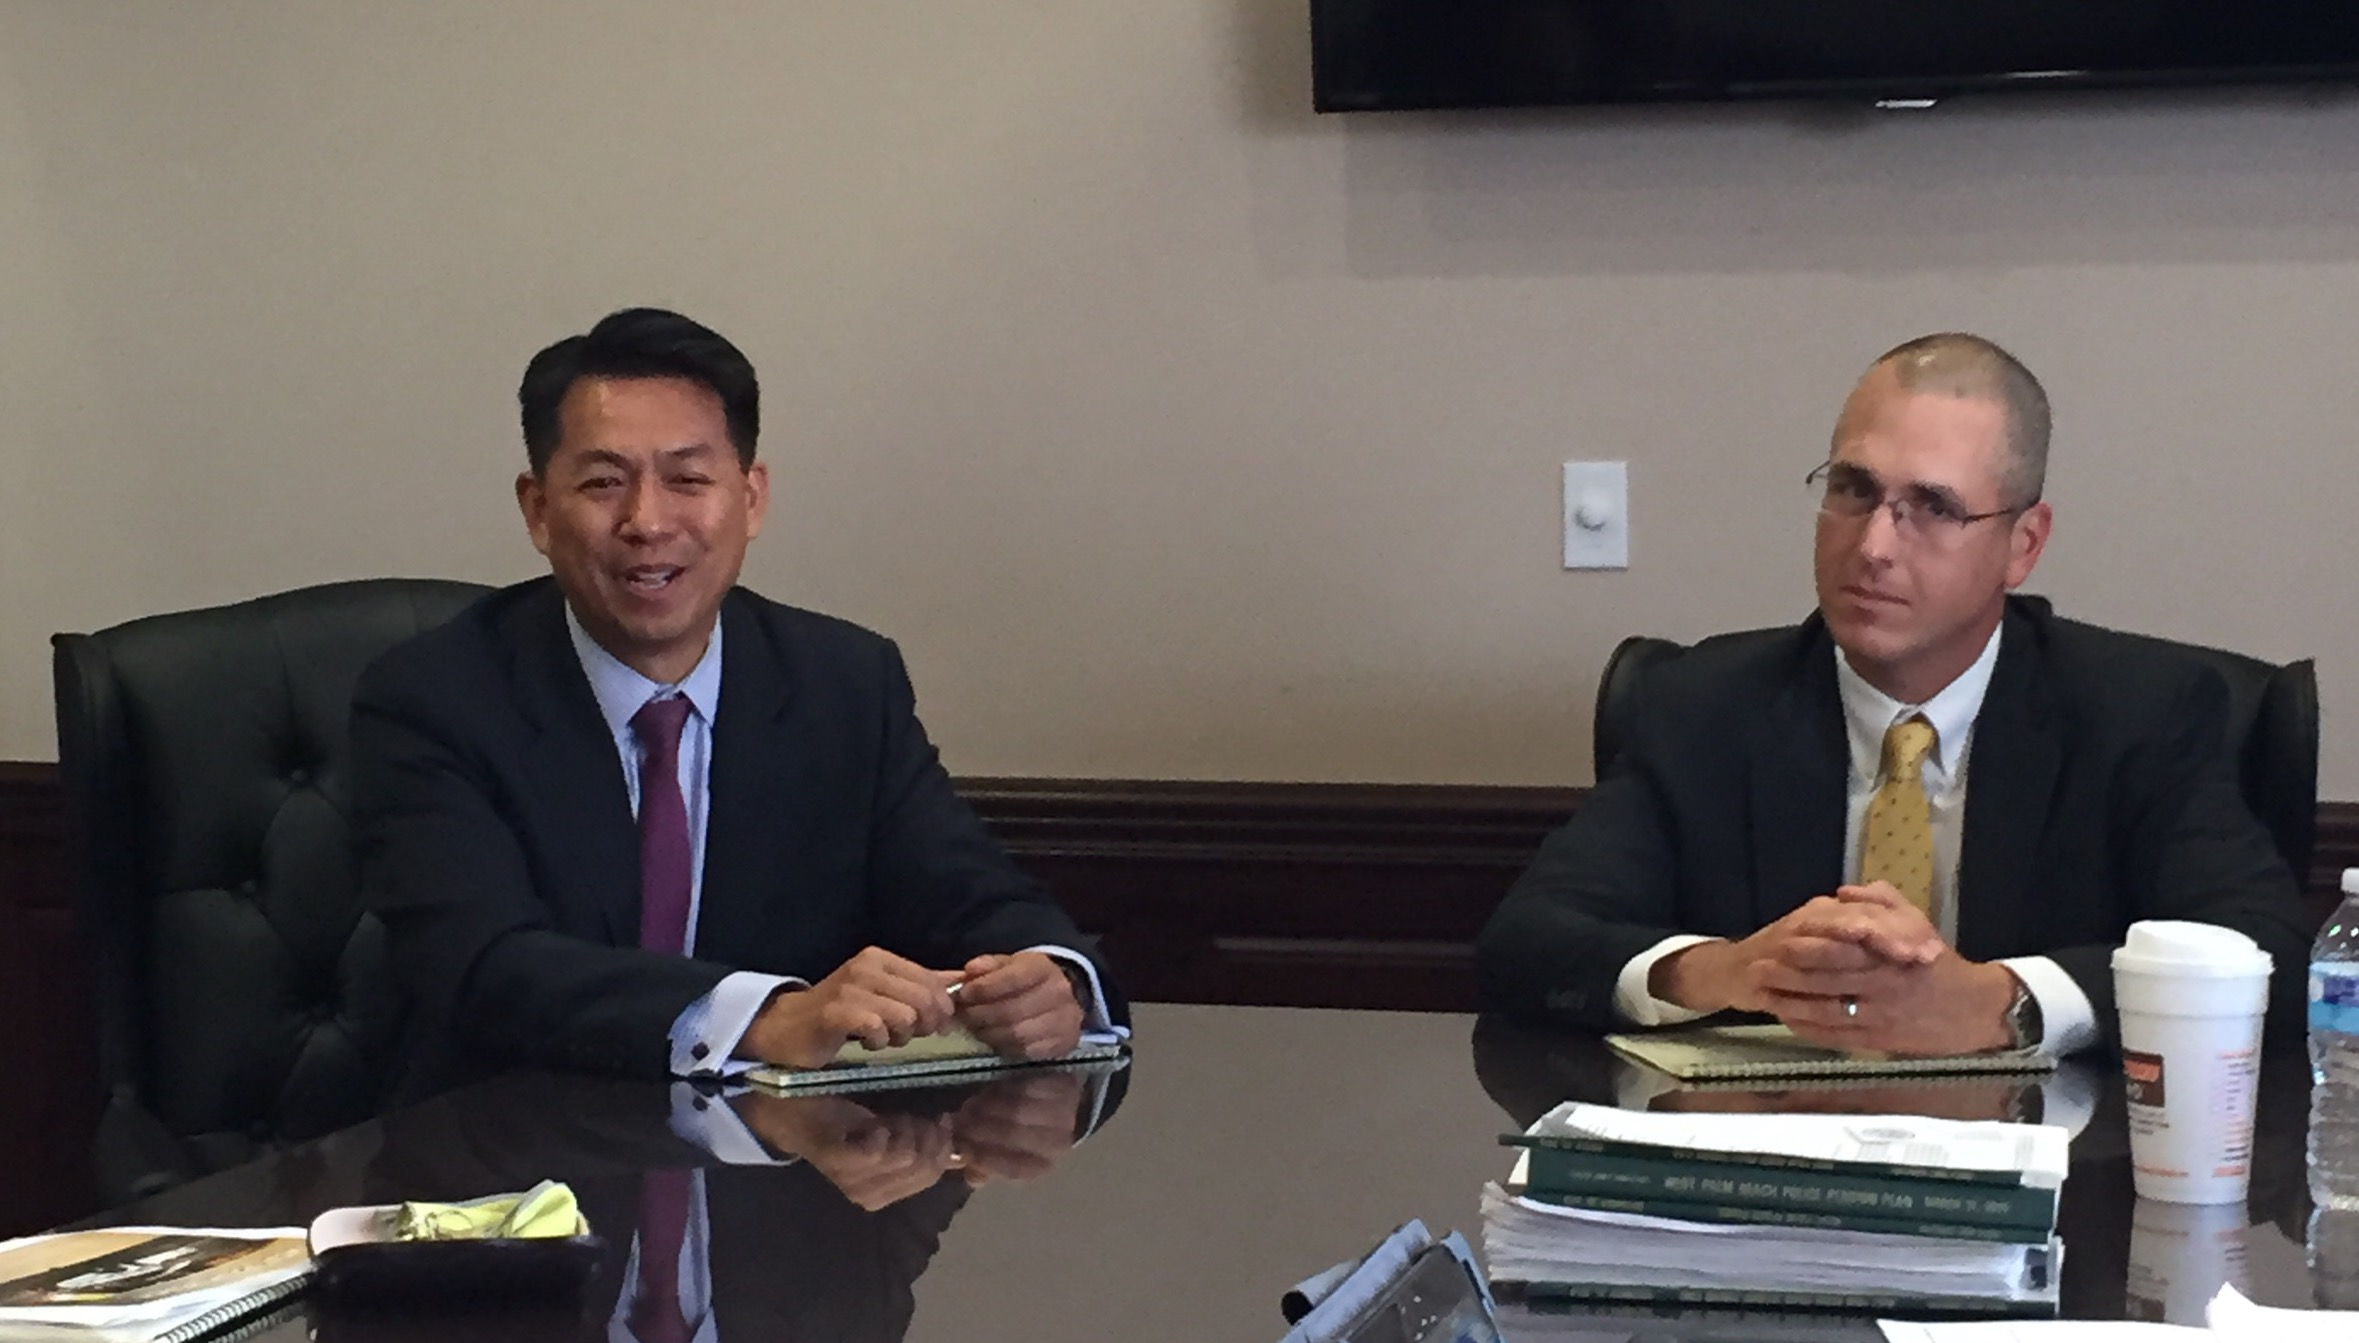 NEW AMSTERDAM – SMID CAP MANAGER - Mr. William Lynch & Mr. Hung Hoang appeared before the Board to review the March 31, 2015 investment report.